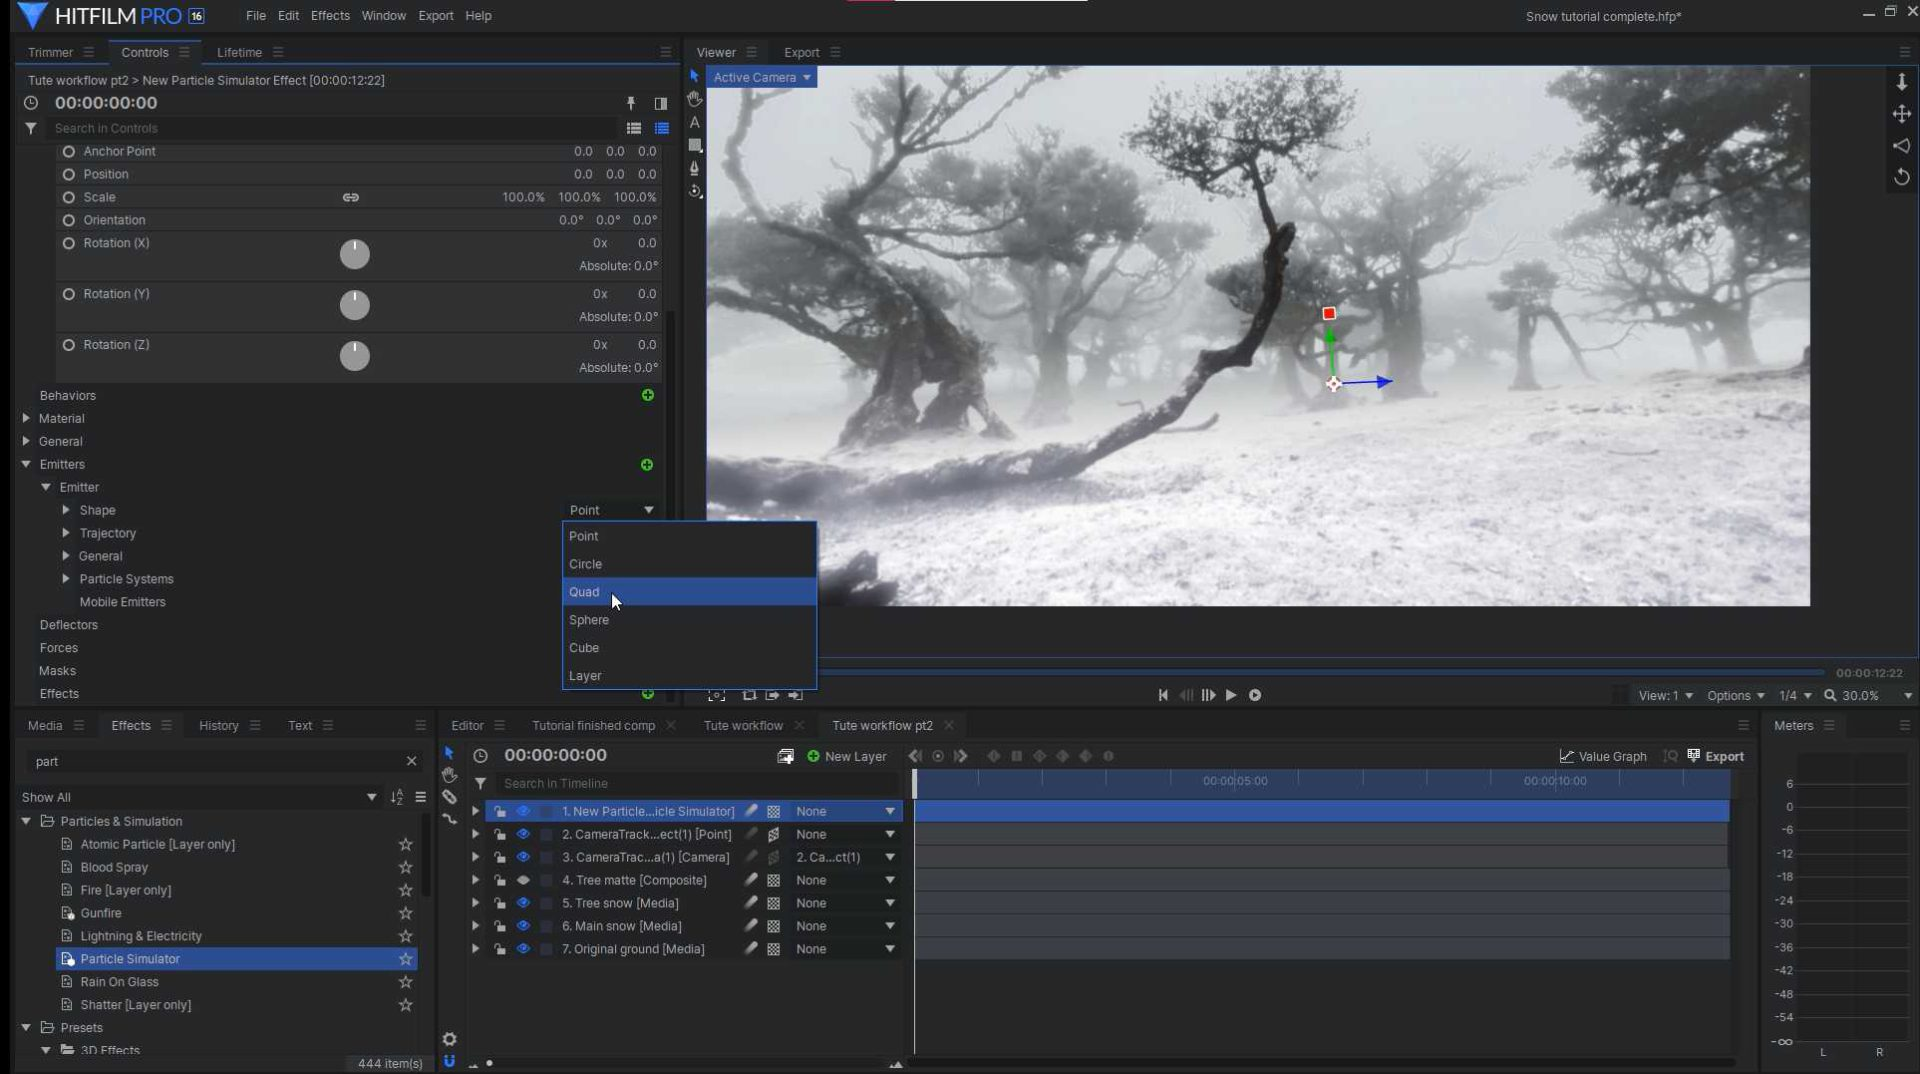 Creating snow particles with the HitFilm Pro particle simulator - snow VFX tutorial